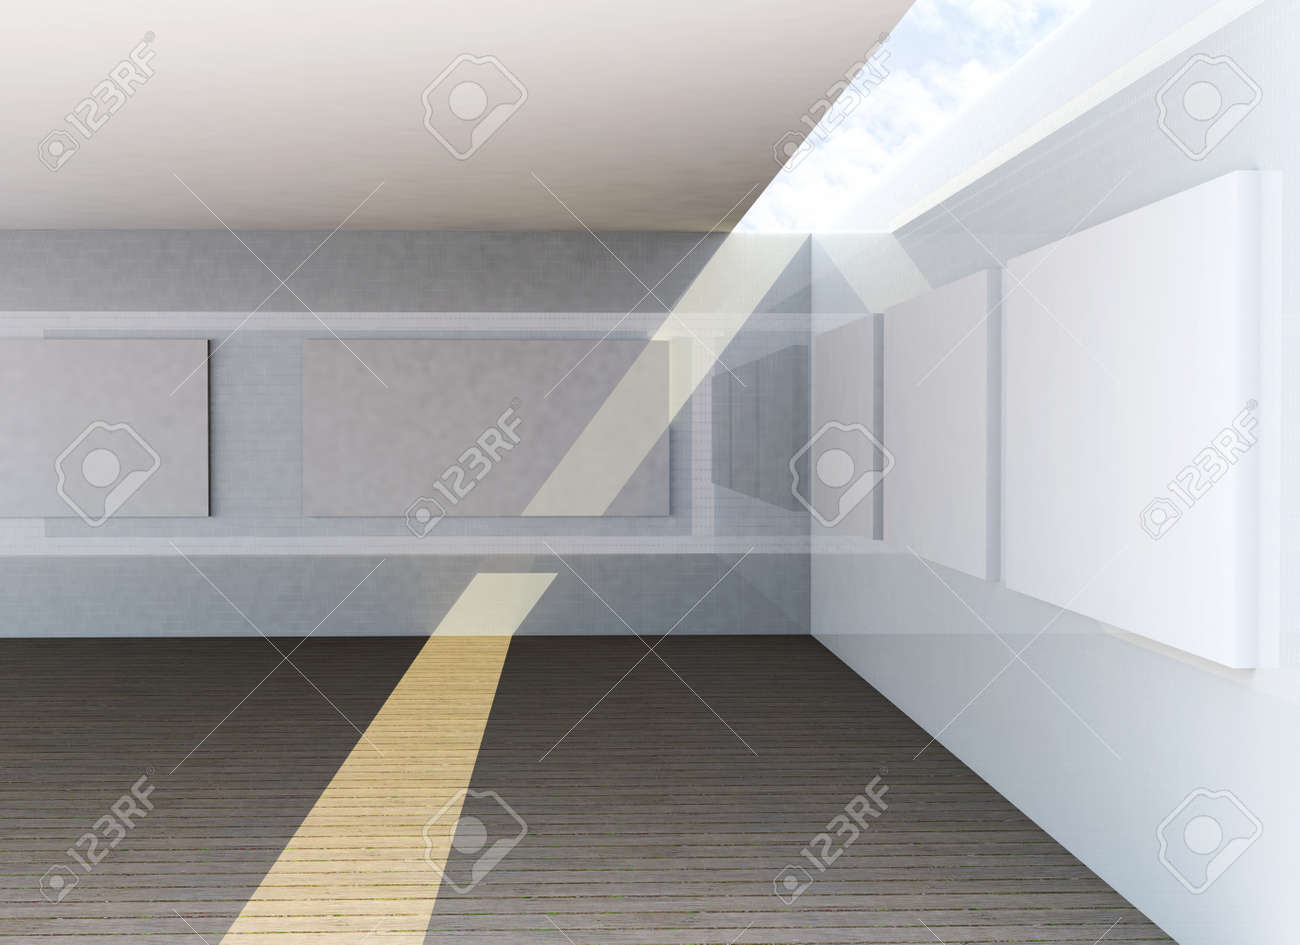 Futuristic Architecture, abstract gallery interior Stock Photo - 15058383